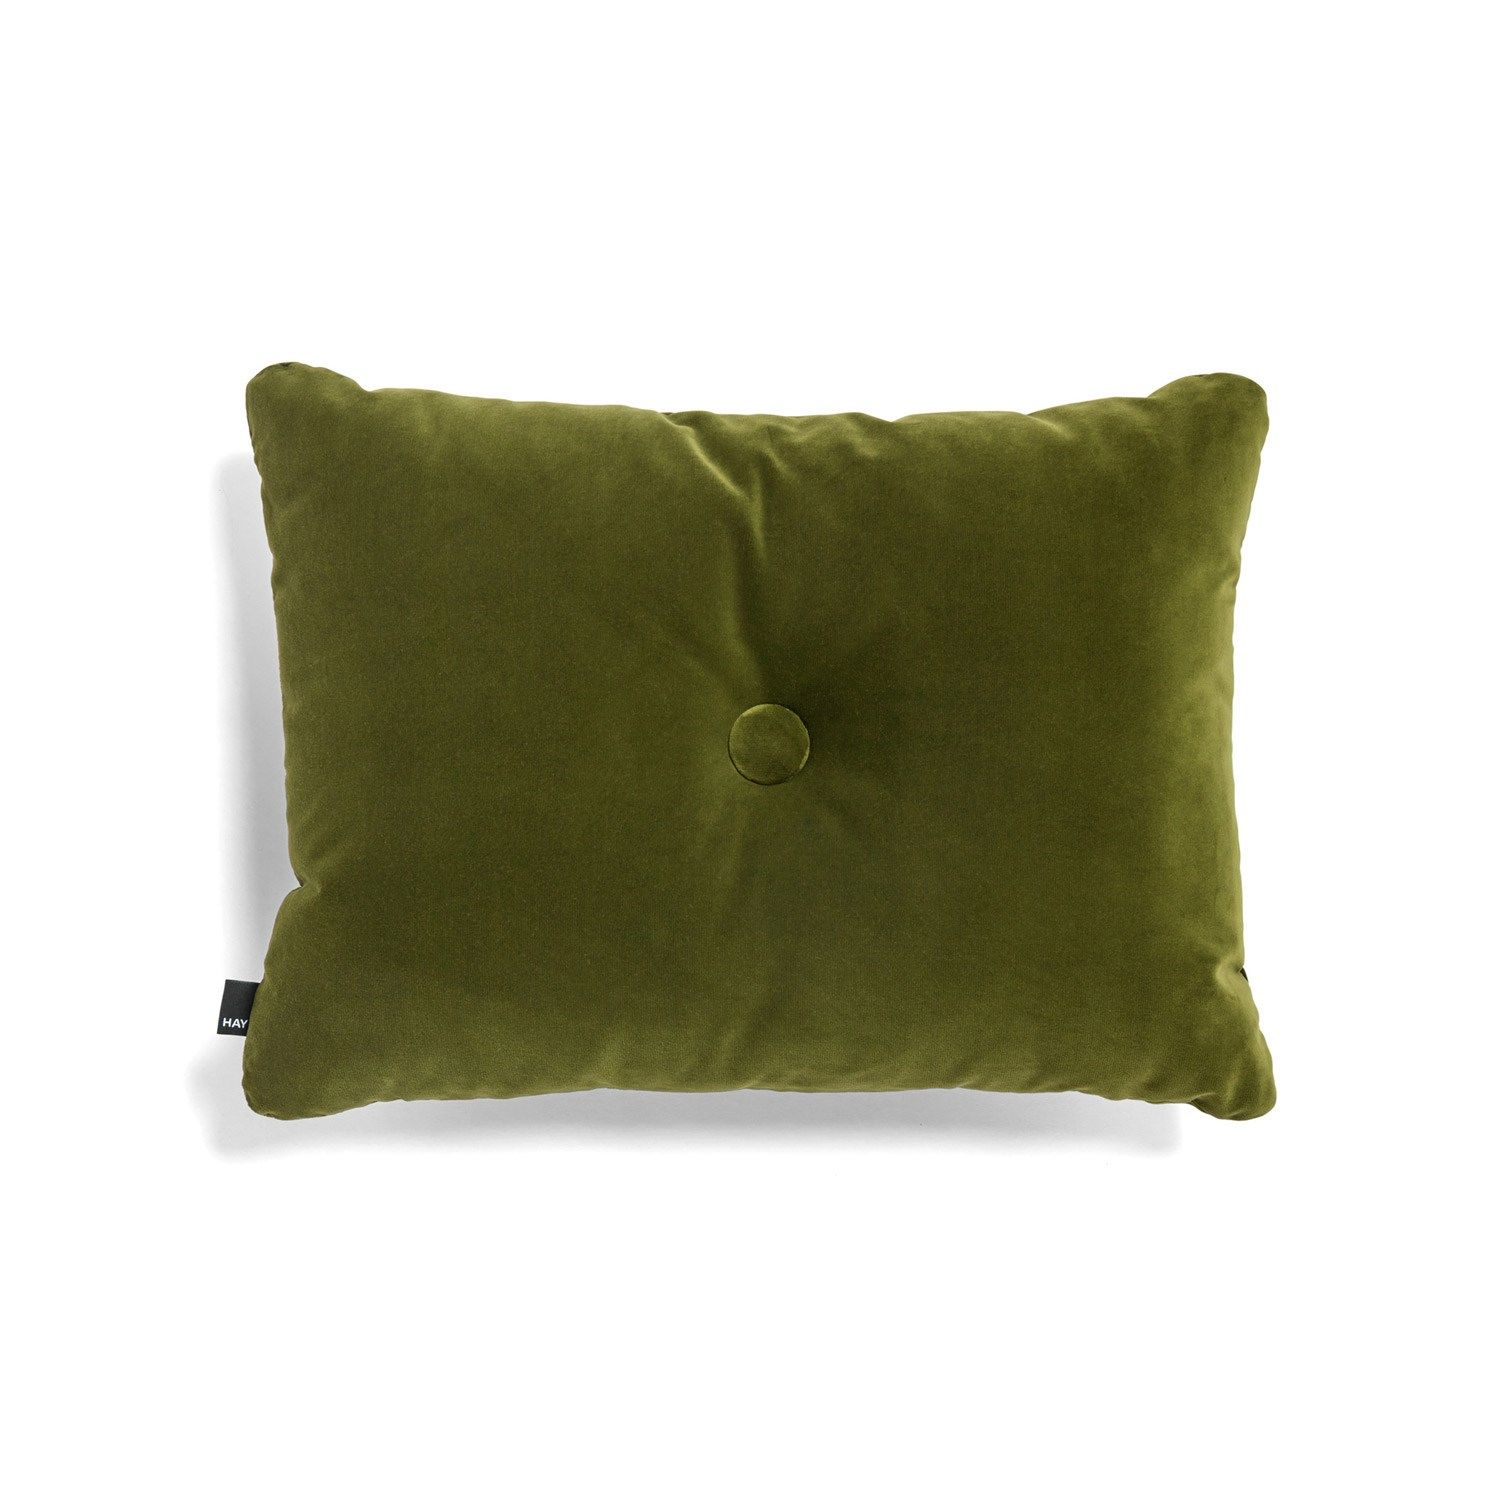 HAY - Pude - Dot Cushion Soft - Velour - Moss